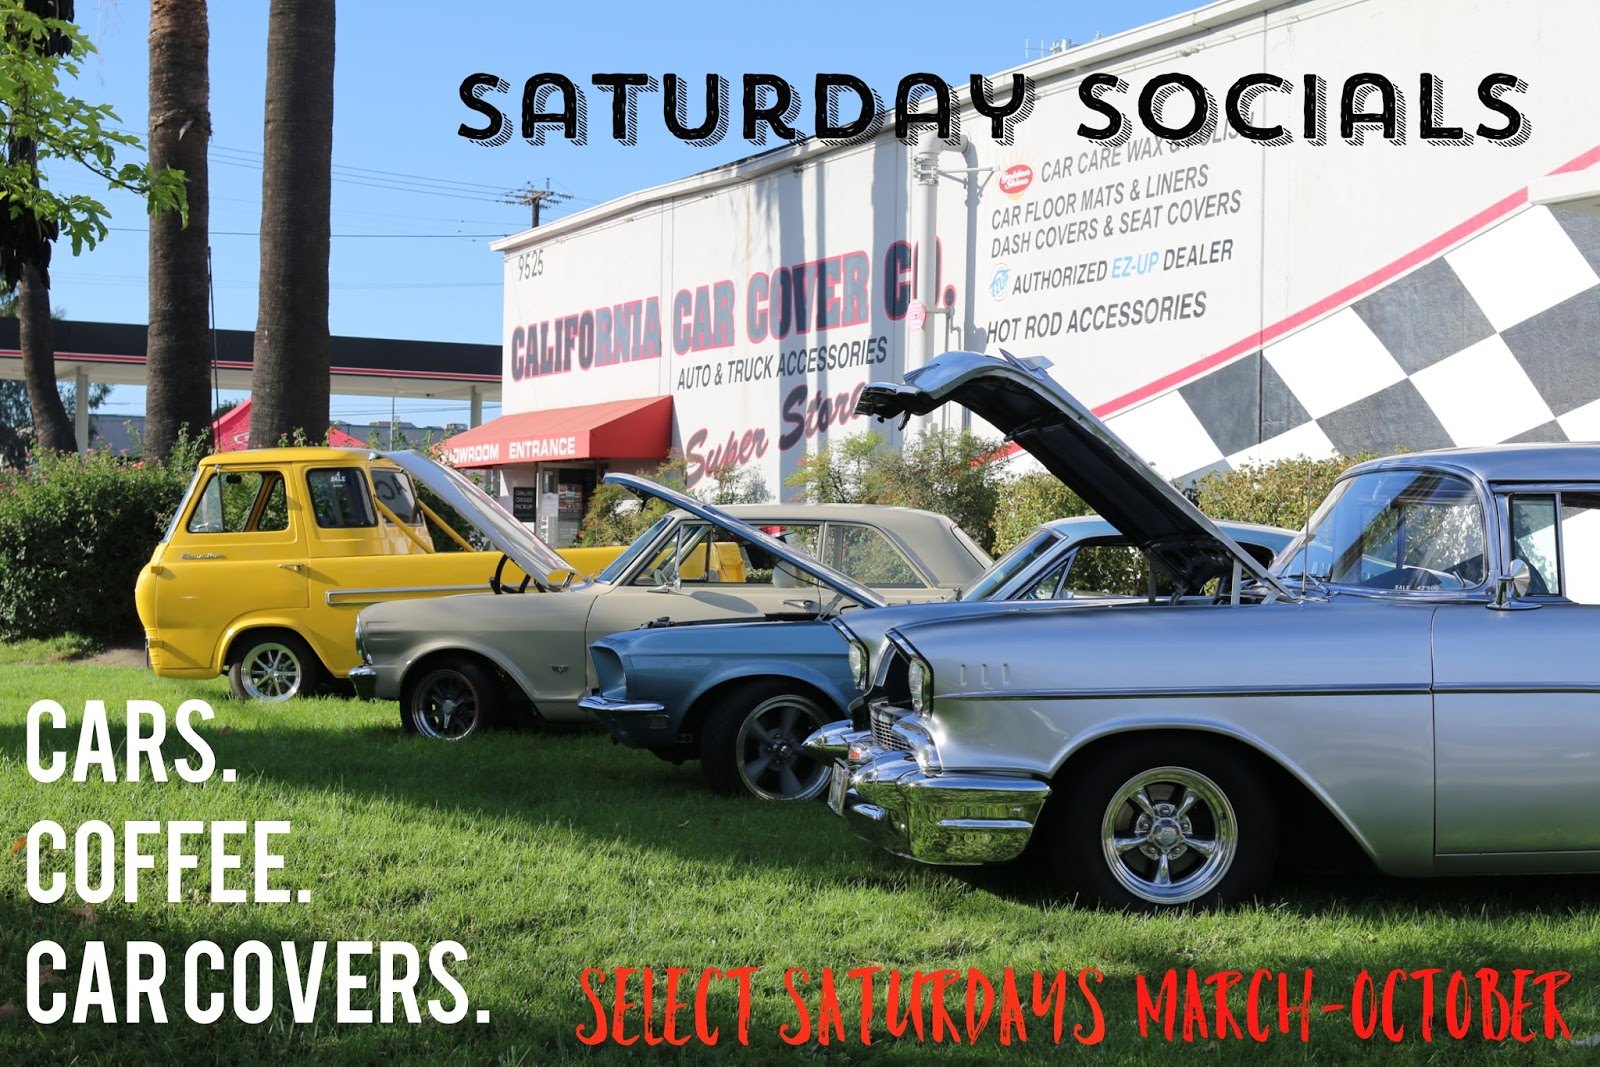 Covering Classic Cars Car Show Calendar At California Car Cover - Classic car show california